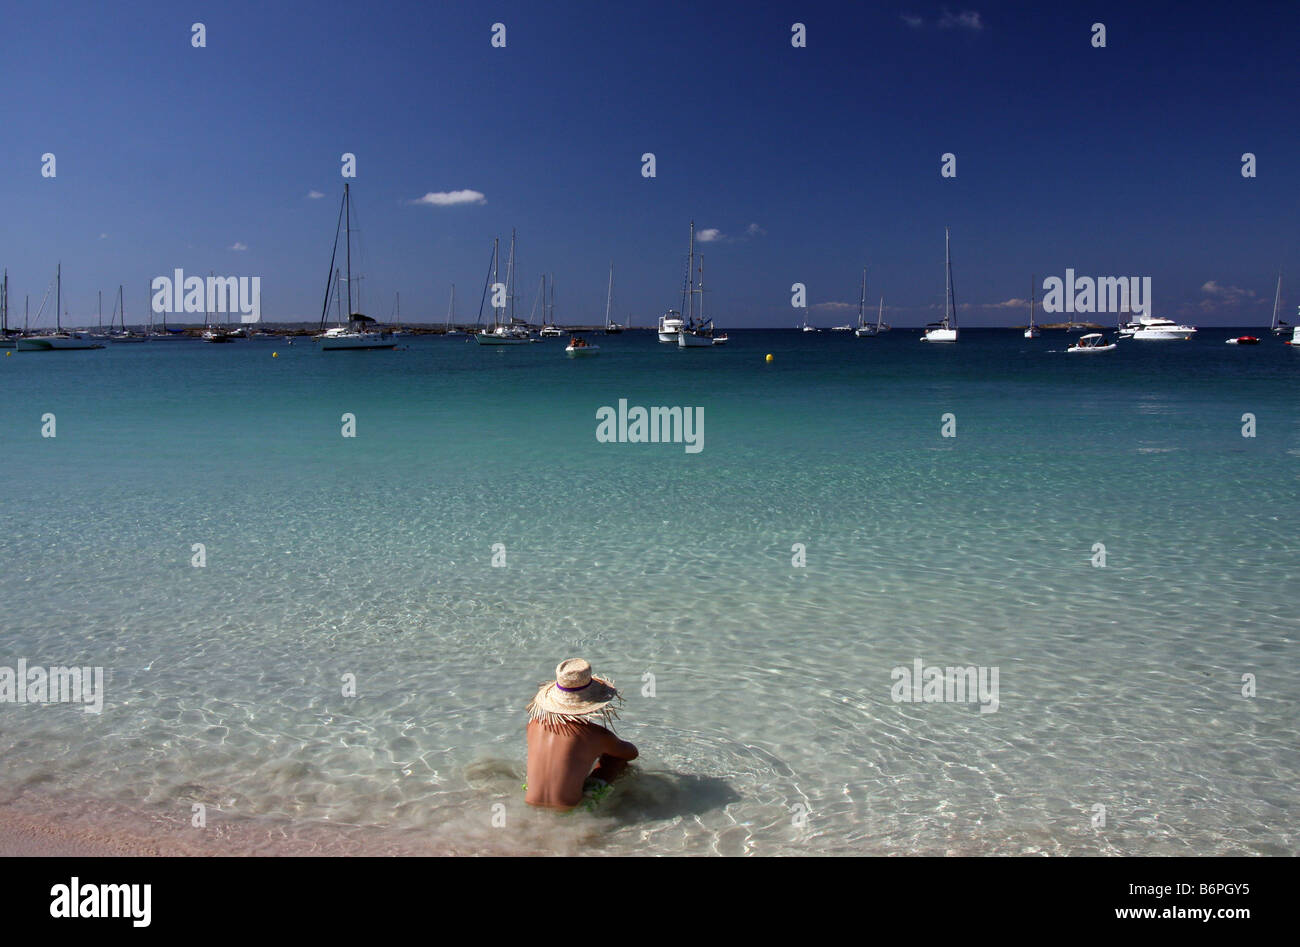 Young man with a straw hat sitting on the beach of Espalmador, in the Balearic Islands, looking at the horizon - Stock Image